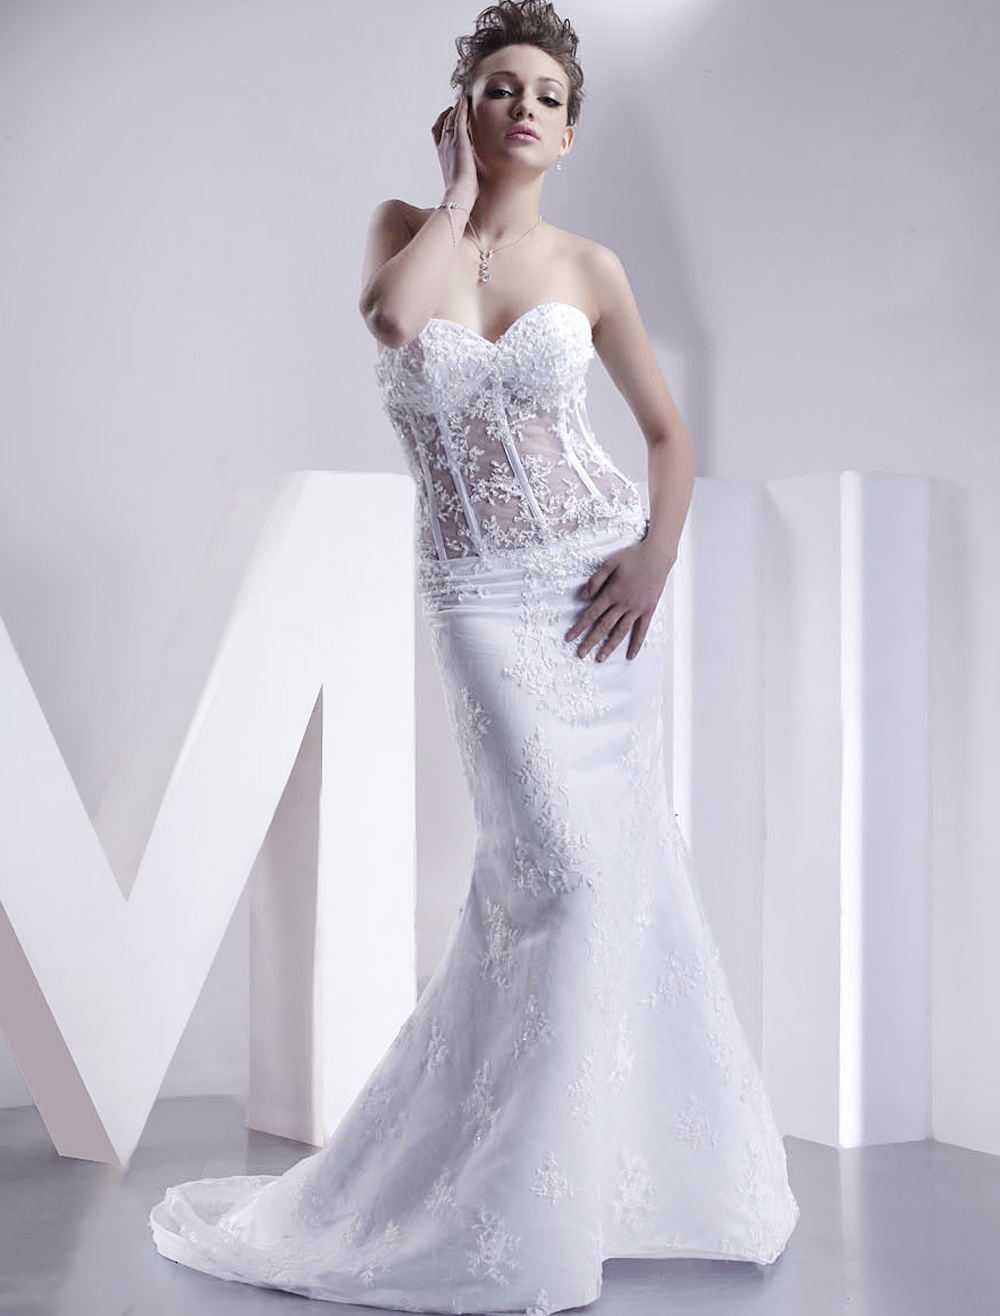 Buy White Wedding Dresses Strapless Mermaid Bridal Dress Lace Applique Sweetheart Neckline Boned Illusion Train Wedding Gown for $152.99 in Milanoo store